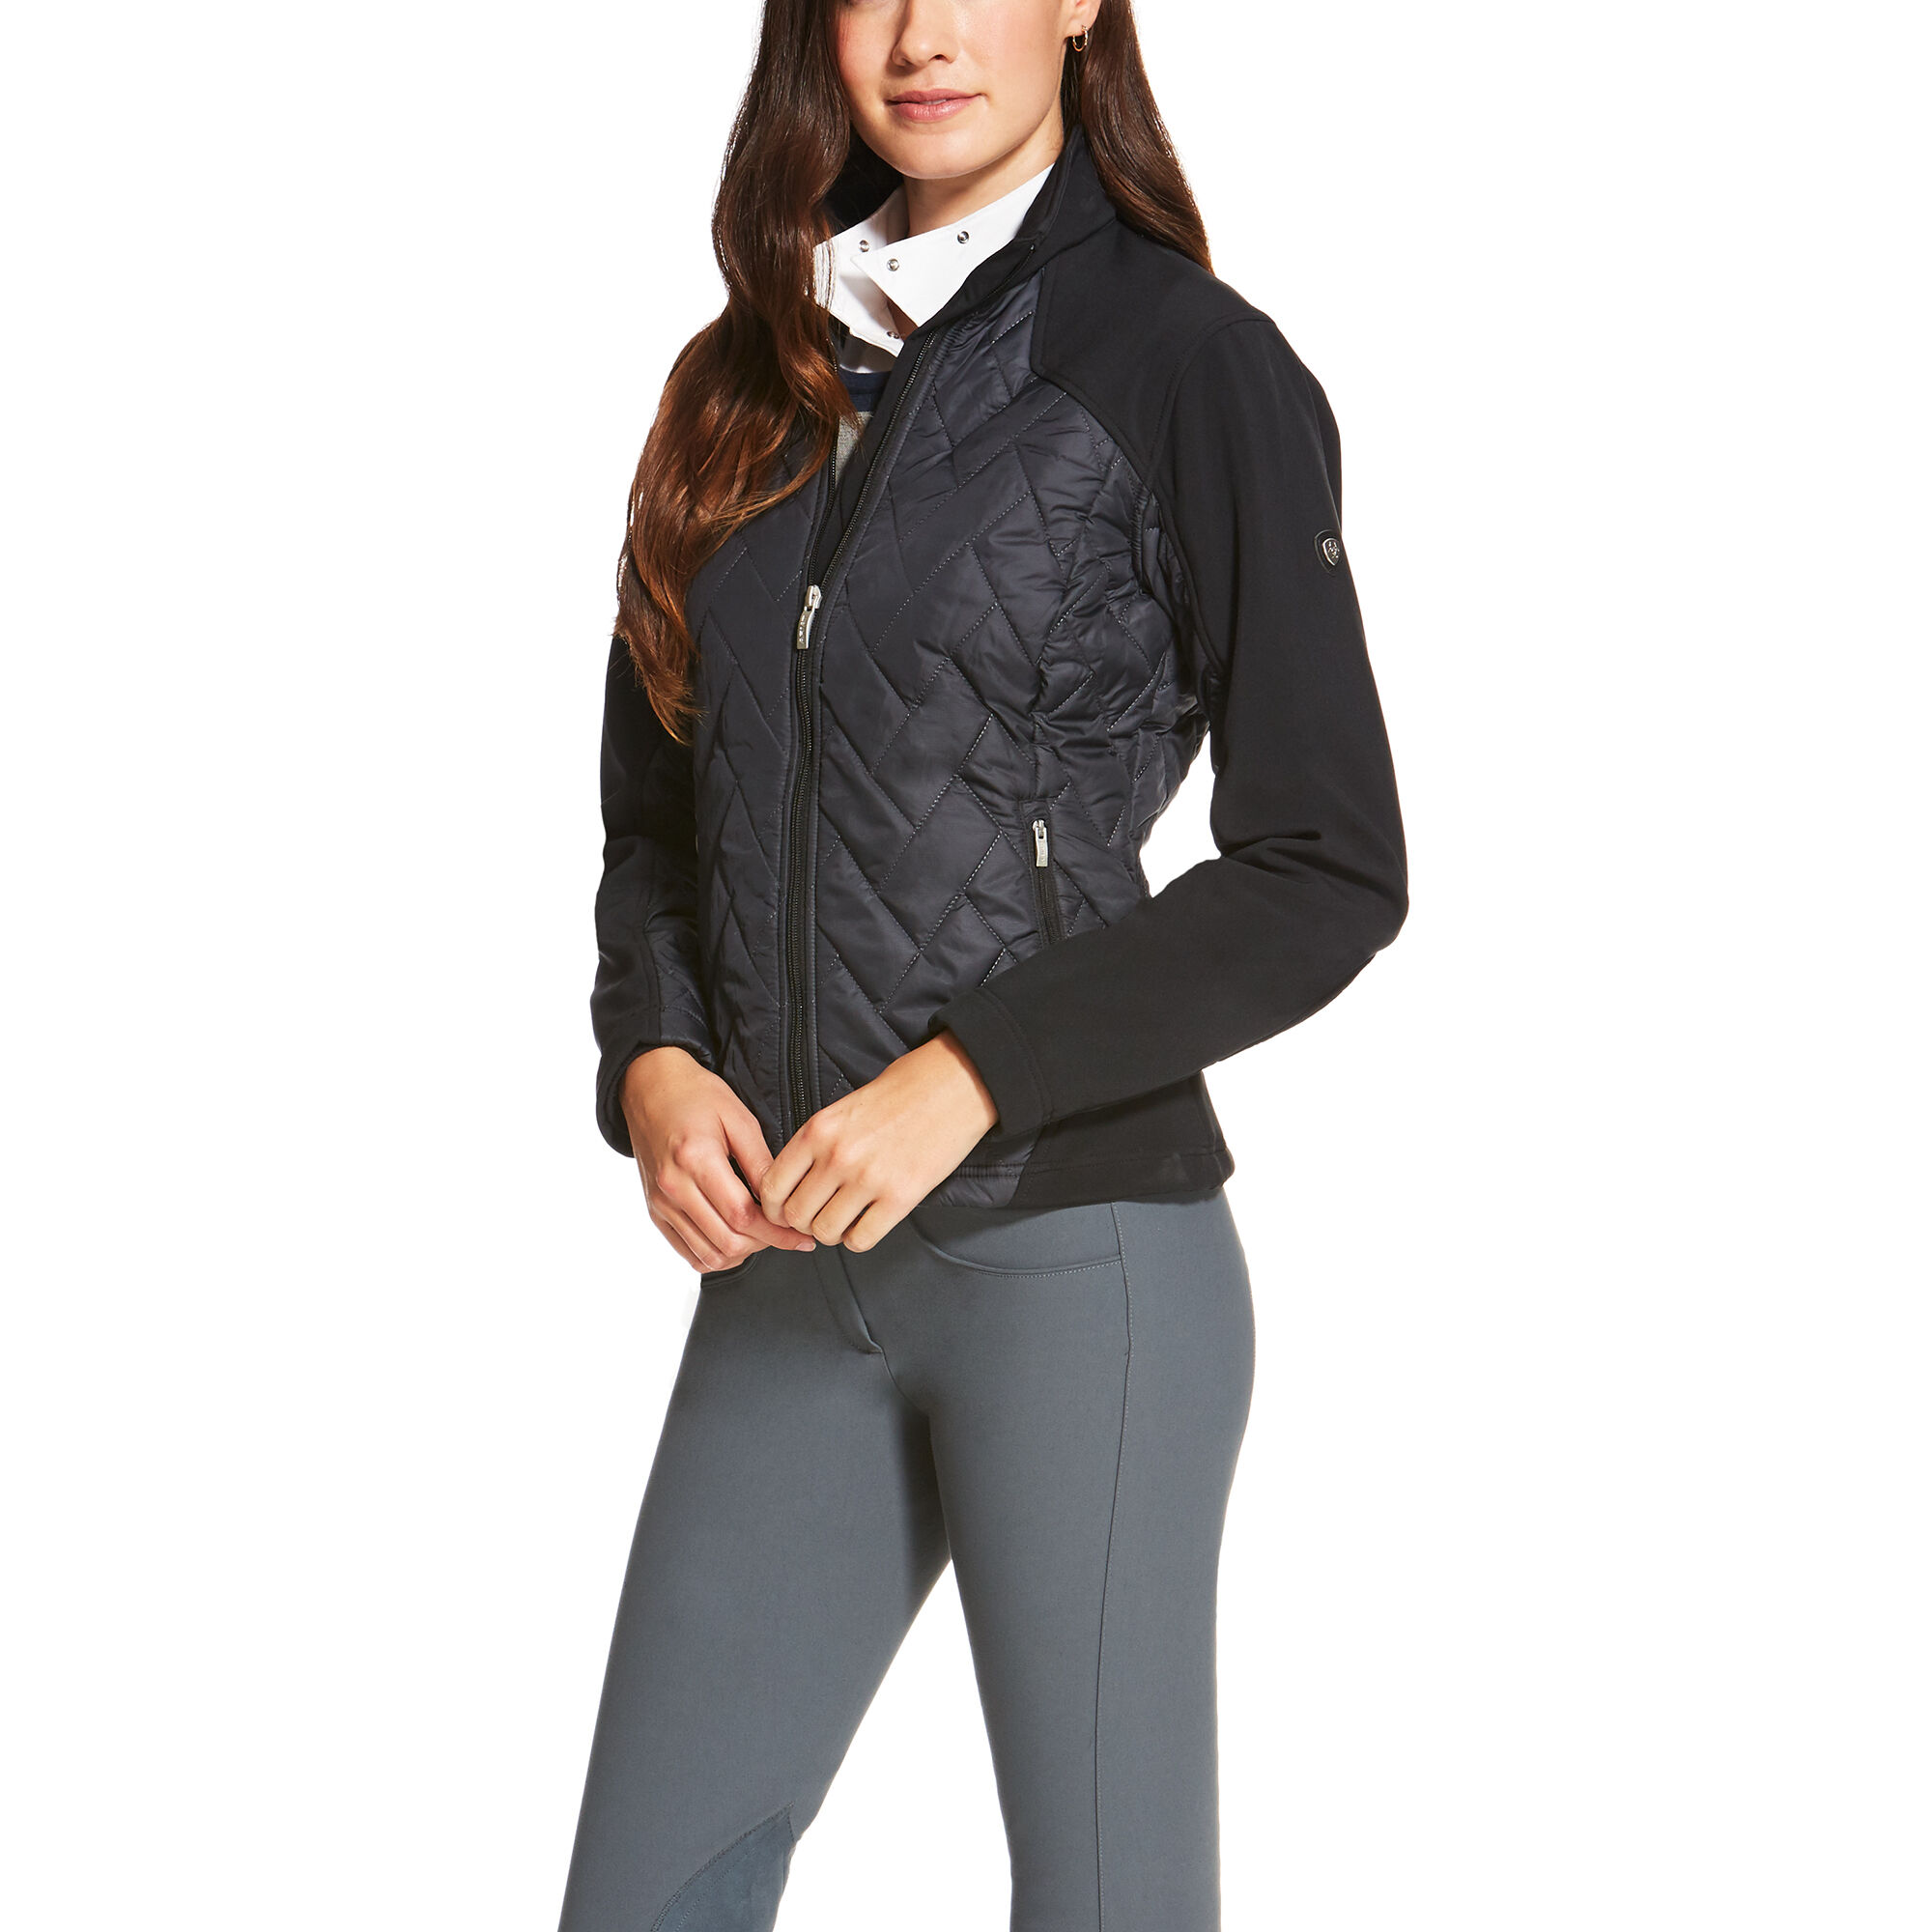 Ariat Brisk Jacket